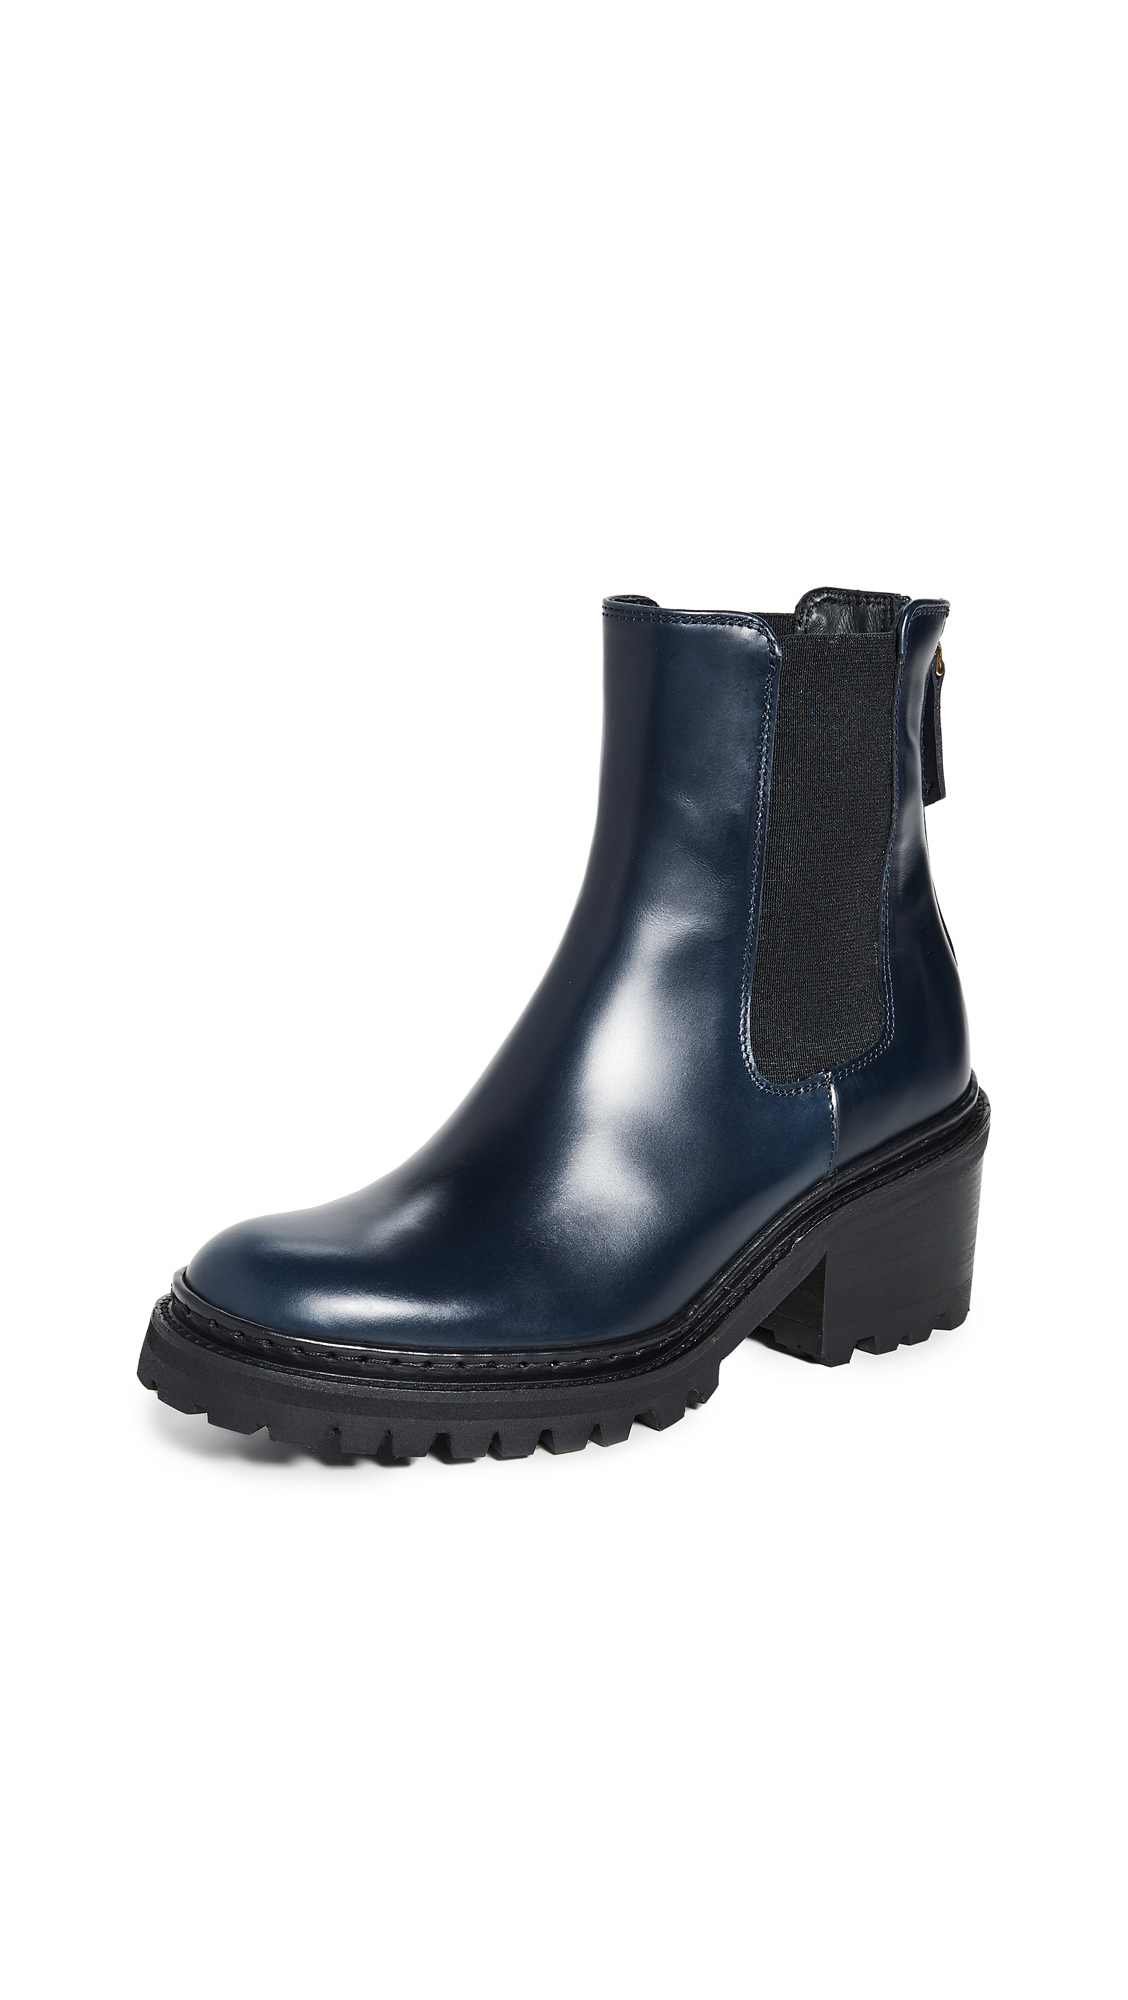 Buy WANT Les Essentiels online - photo of WANT Les Essentiels Valdez Block Heel Chelsea Boots